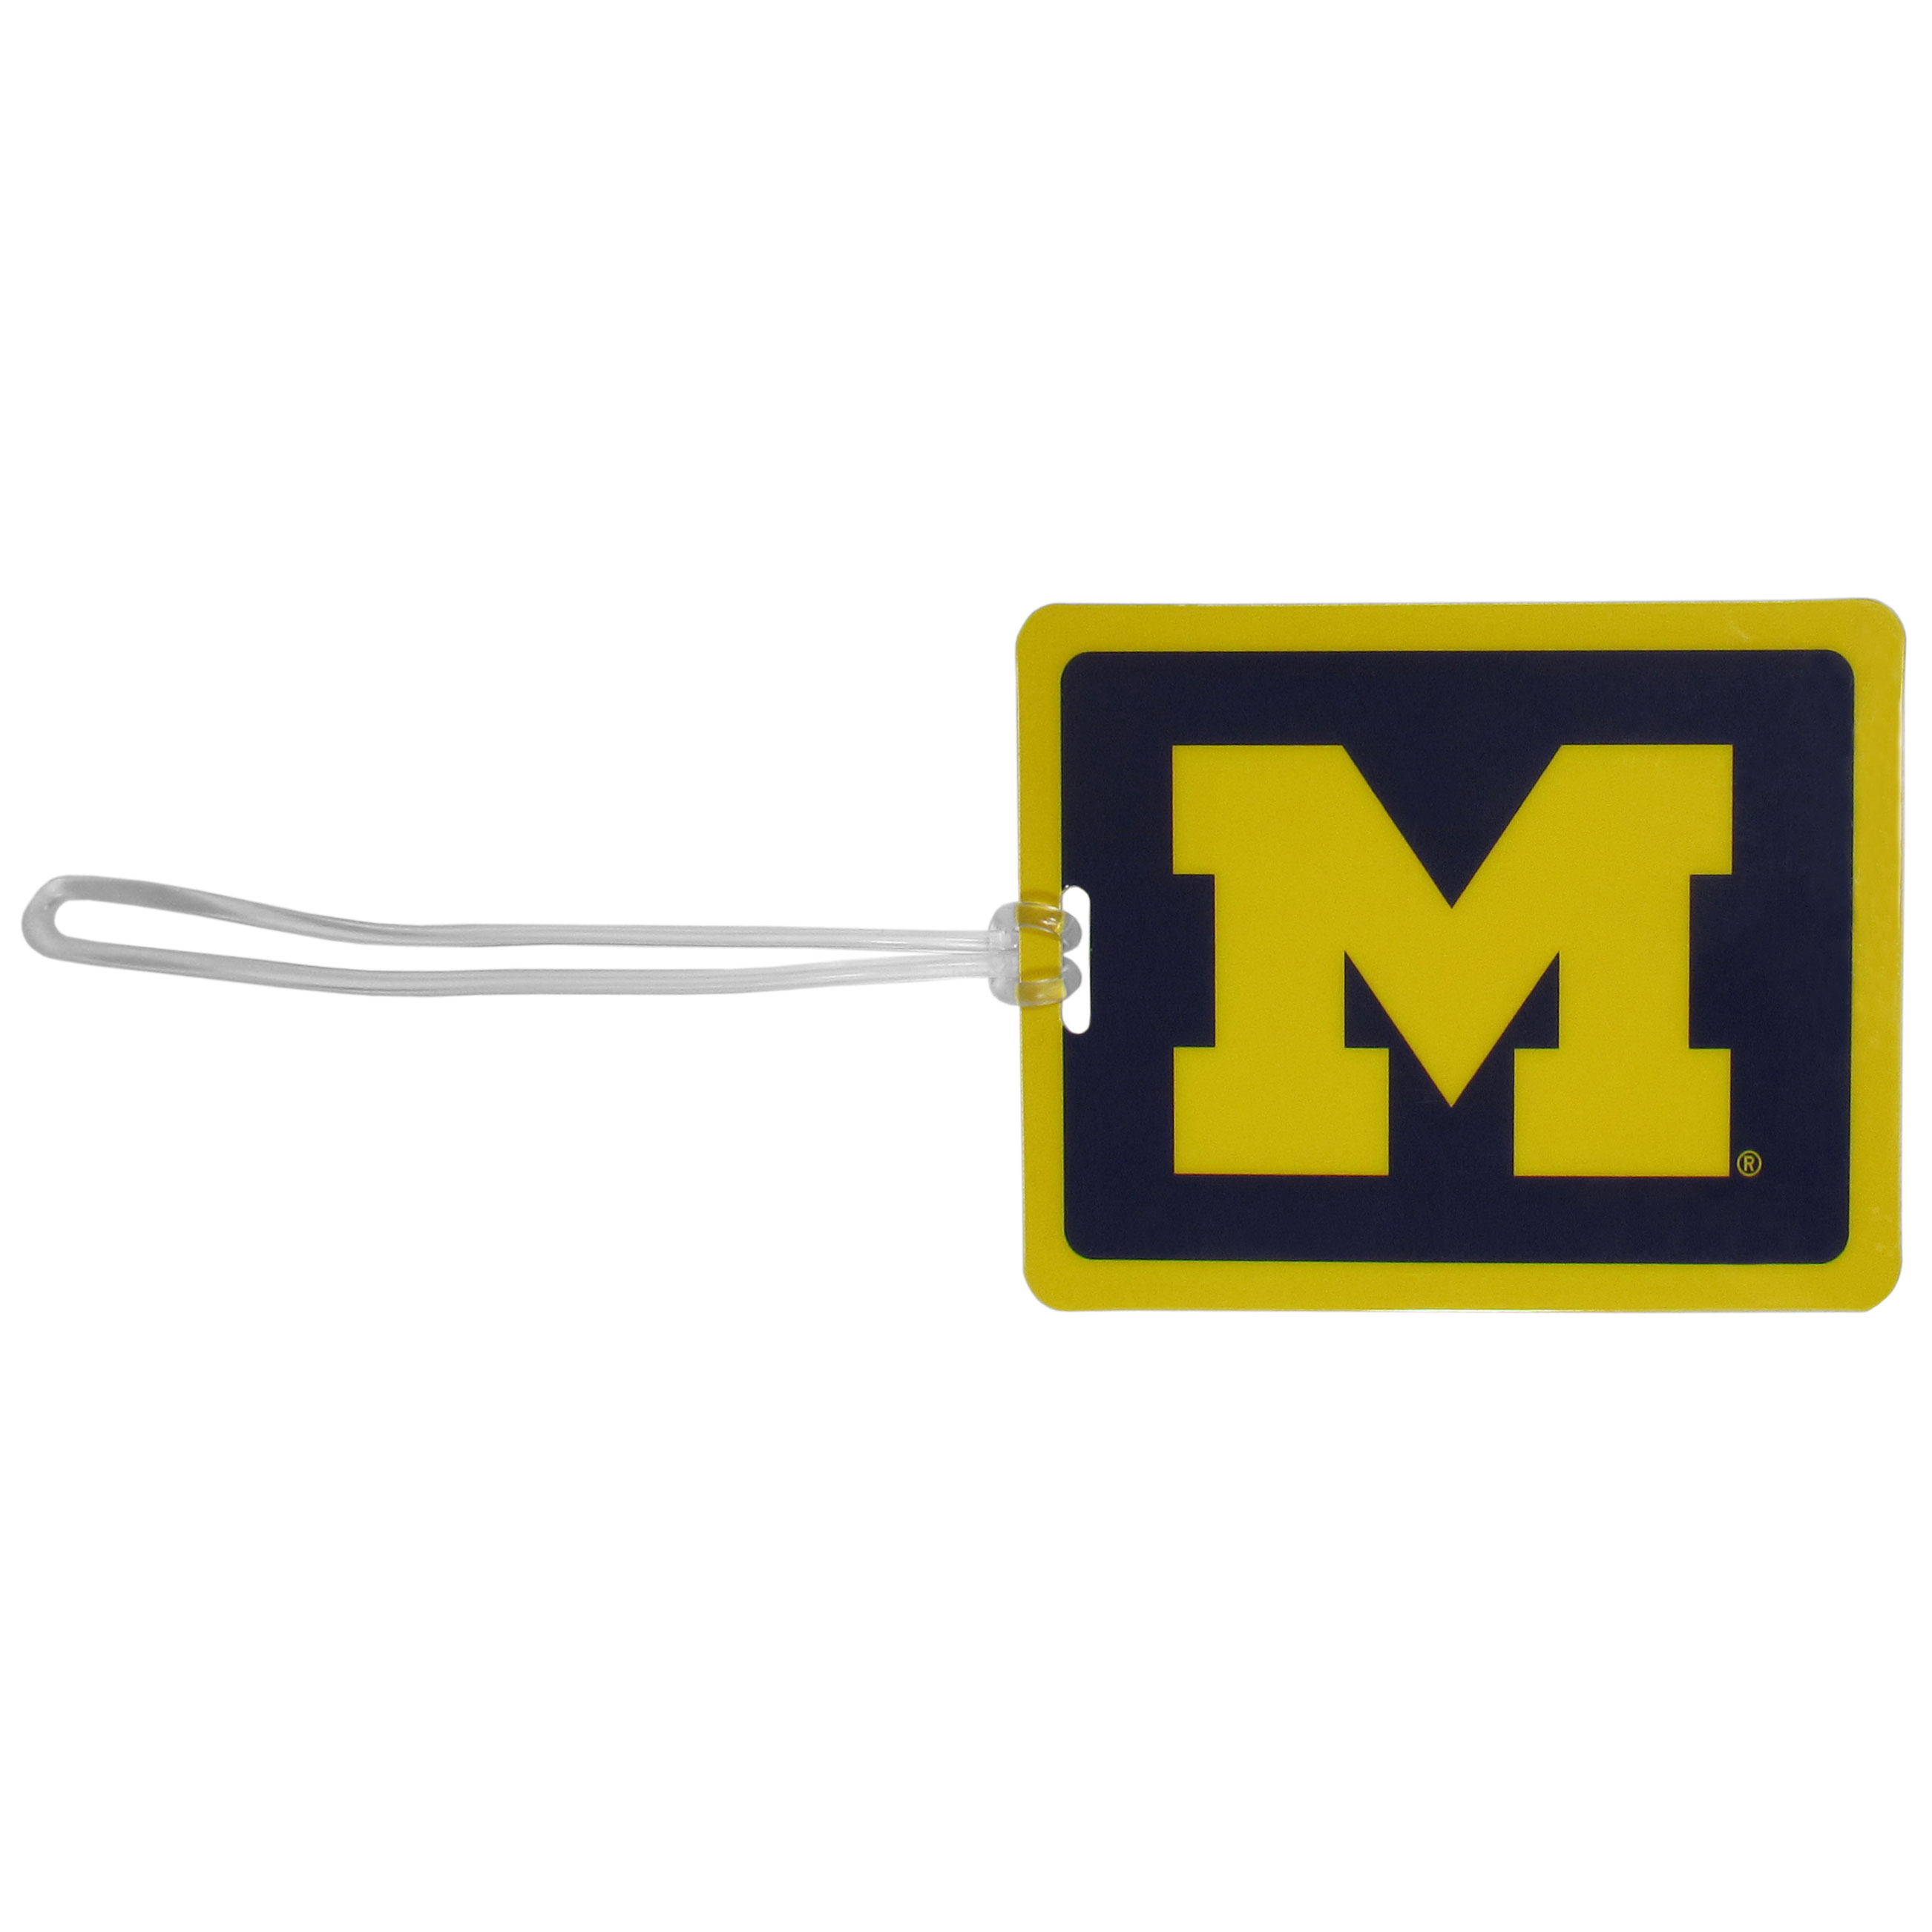 Michigan Wolverines Vinyl Luggage Tag - Tired of trying to spot your suitcase or bag in a sea of luggage? Try our large and colorful Michigan Wolverines luggage tag set. The tag is 4x3 inches and has a 5 inch cord to attach it easily to your bags, backpacks or luggage. The front of the tag features the team logo in a bright, team colored background and you can write you name, address and phone number on the back of the tag.